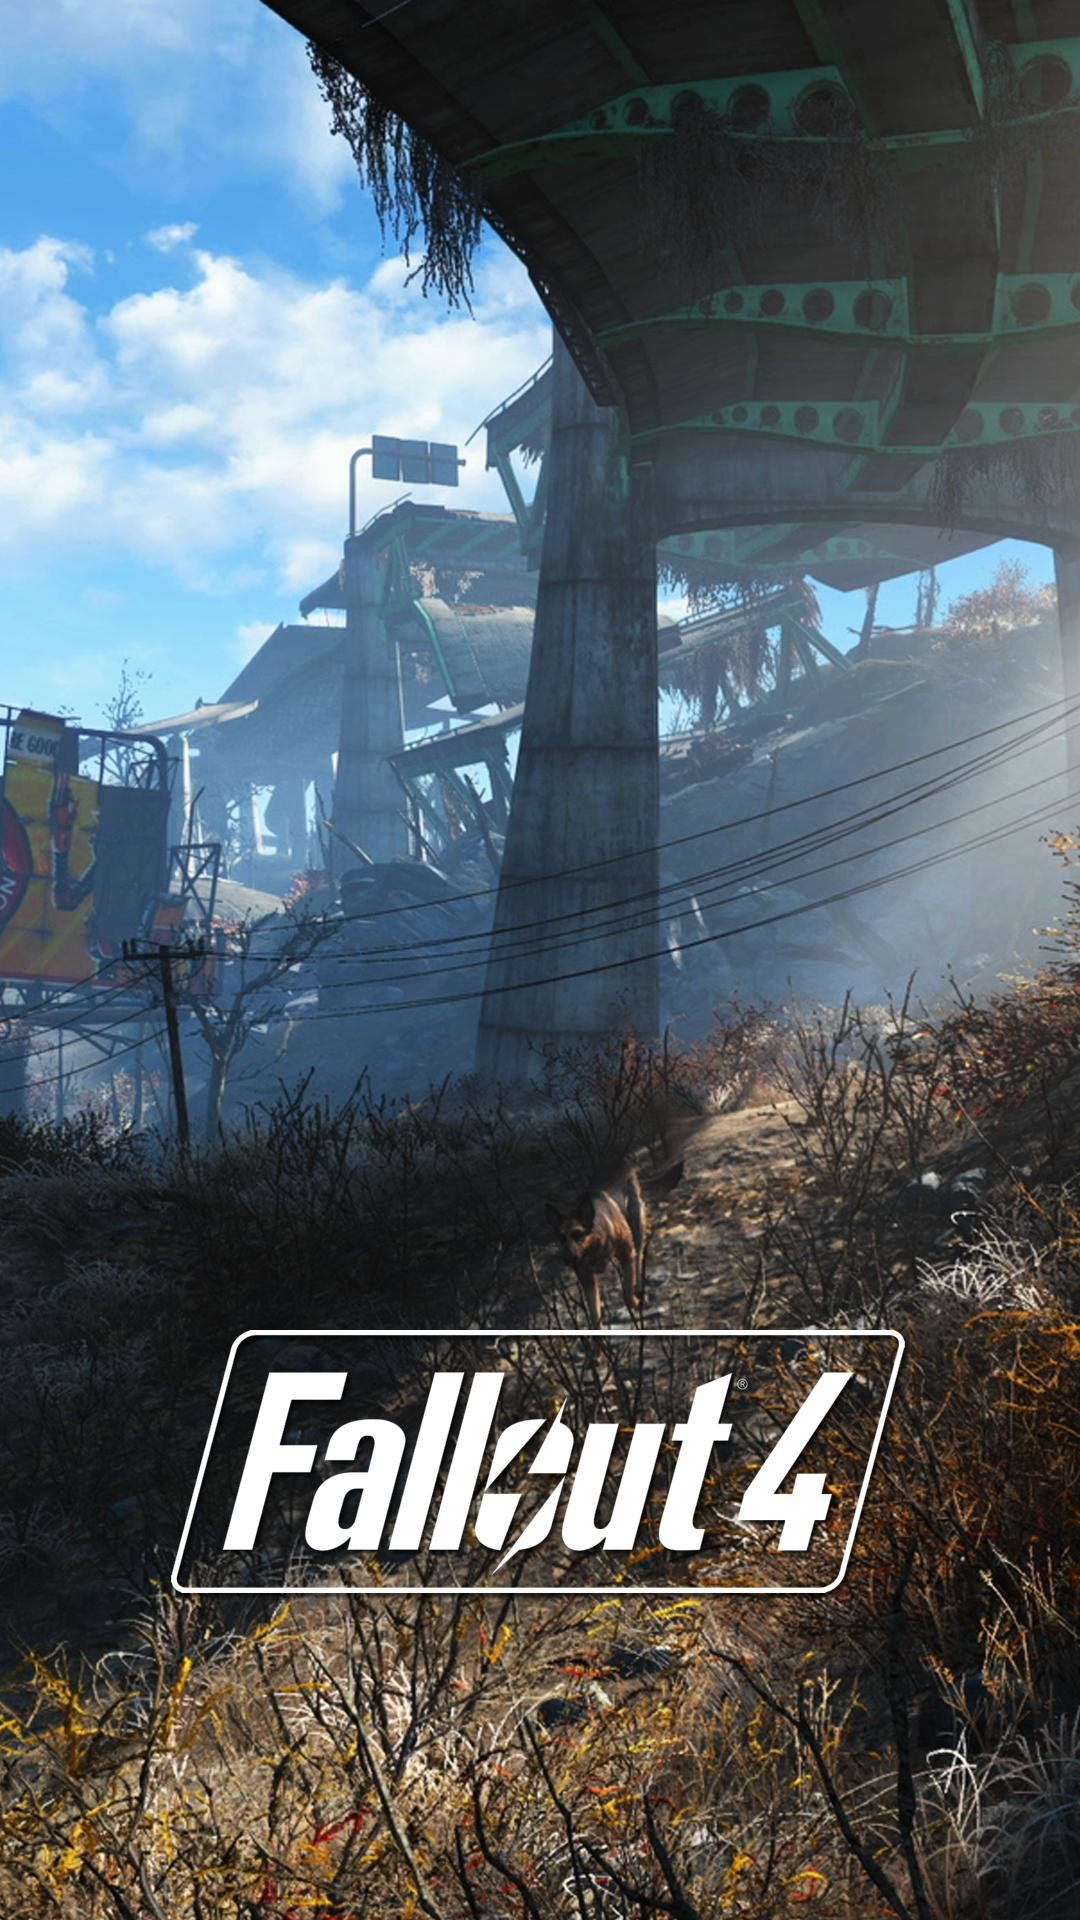 Download lock screen wallpaper iphone 4 – I made some Fallout 4 .